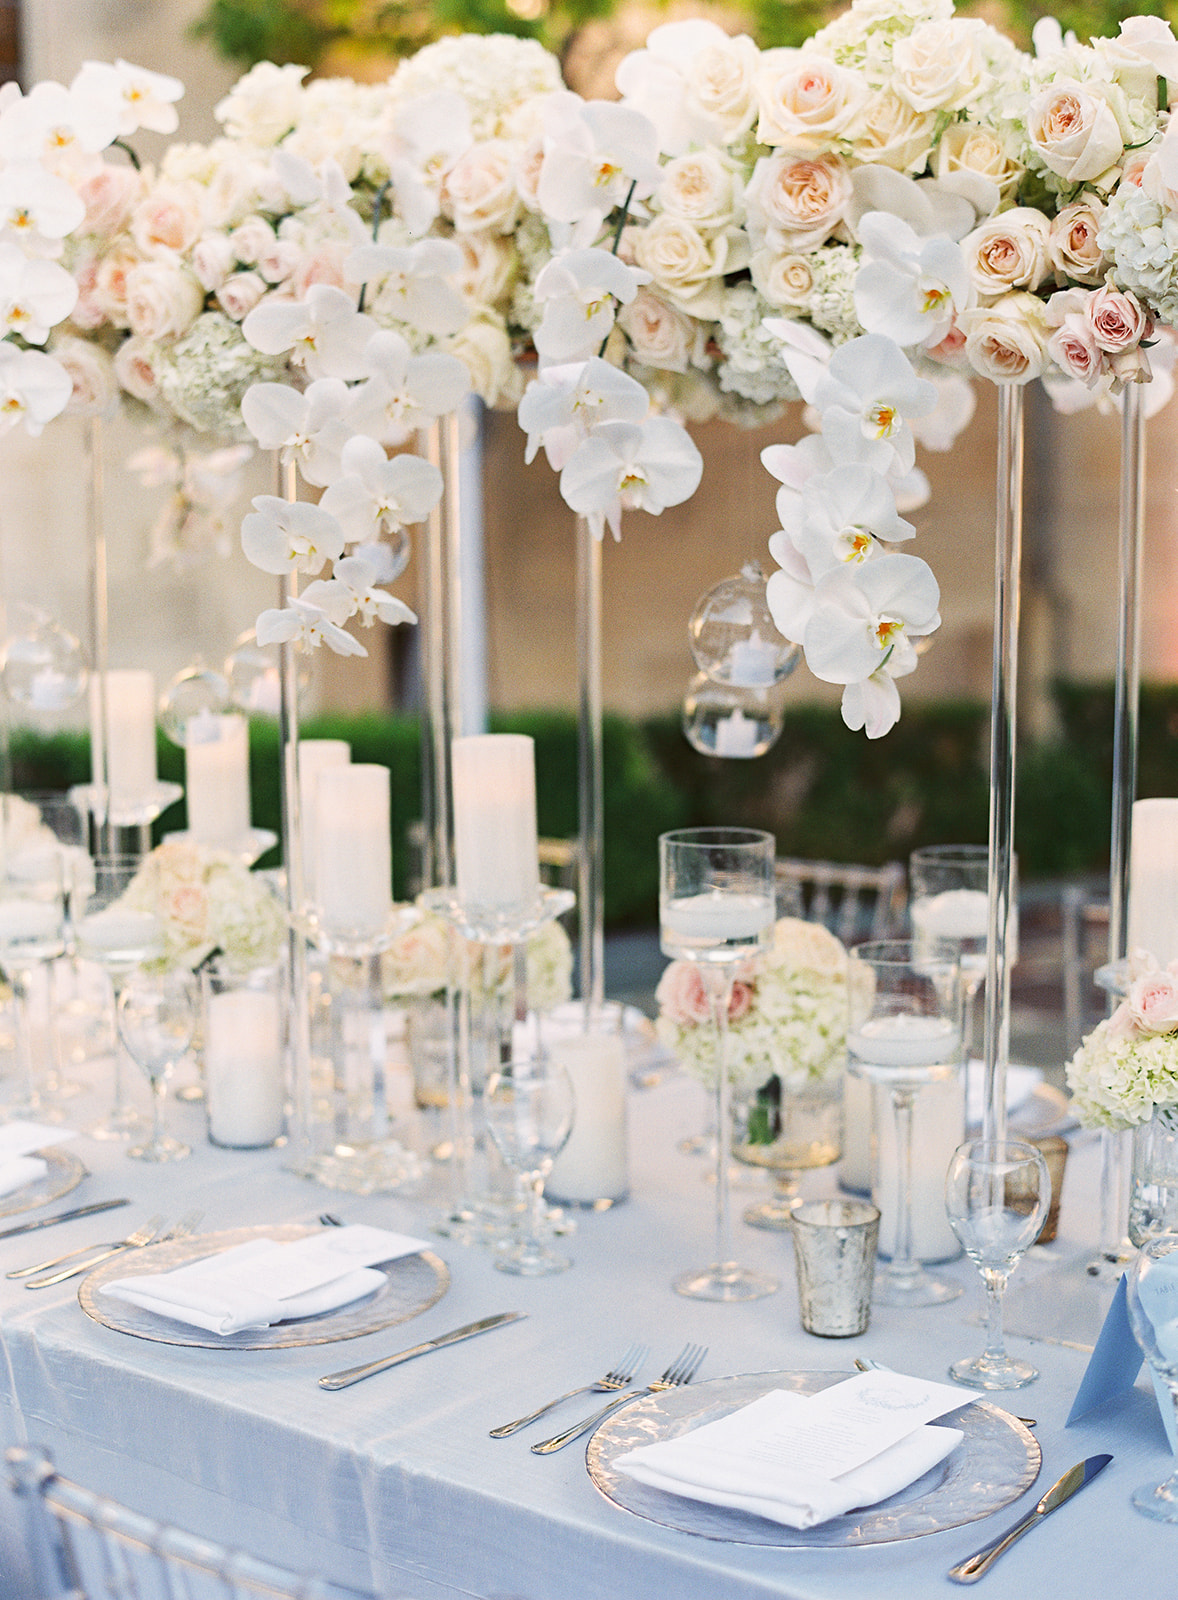 close up shot of table setting with light blue tablecloth and white orchid florals cascading down